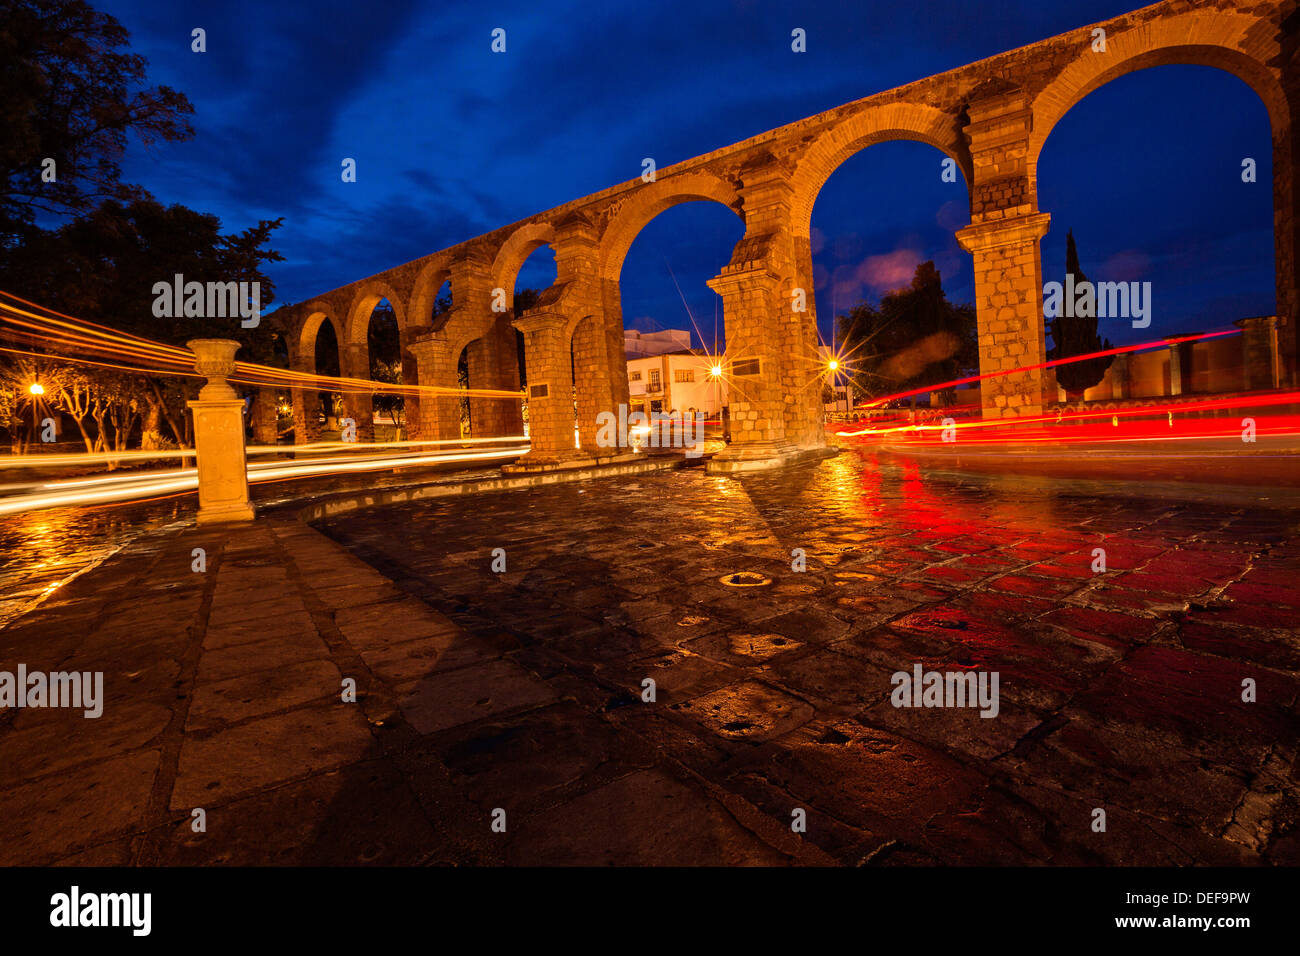 The remains of the El Cubo aqueduct in Zacatecas, Mexico, at night after a rain storm. - Stock Image